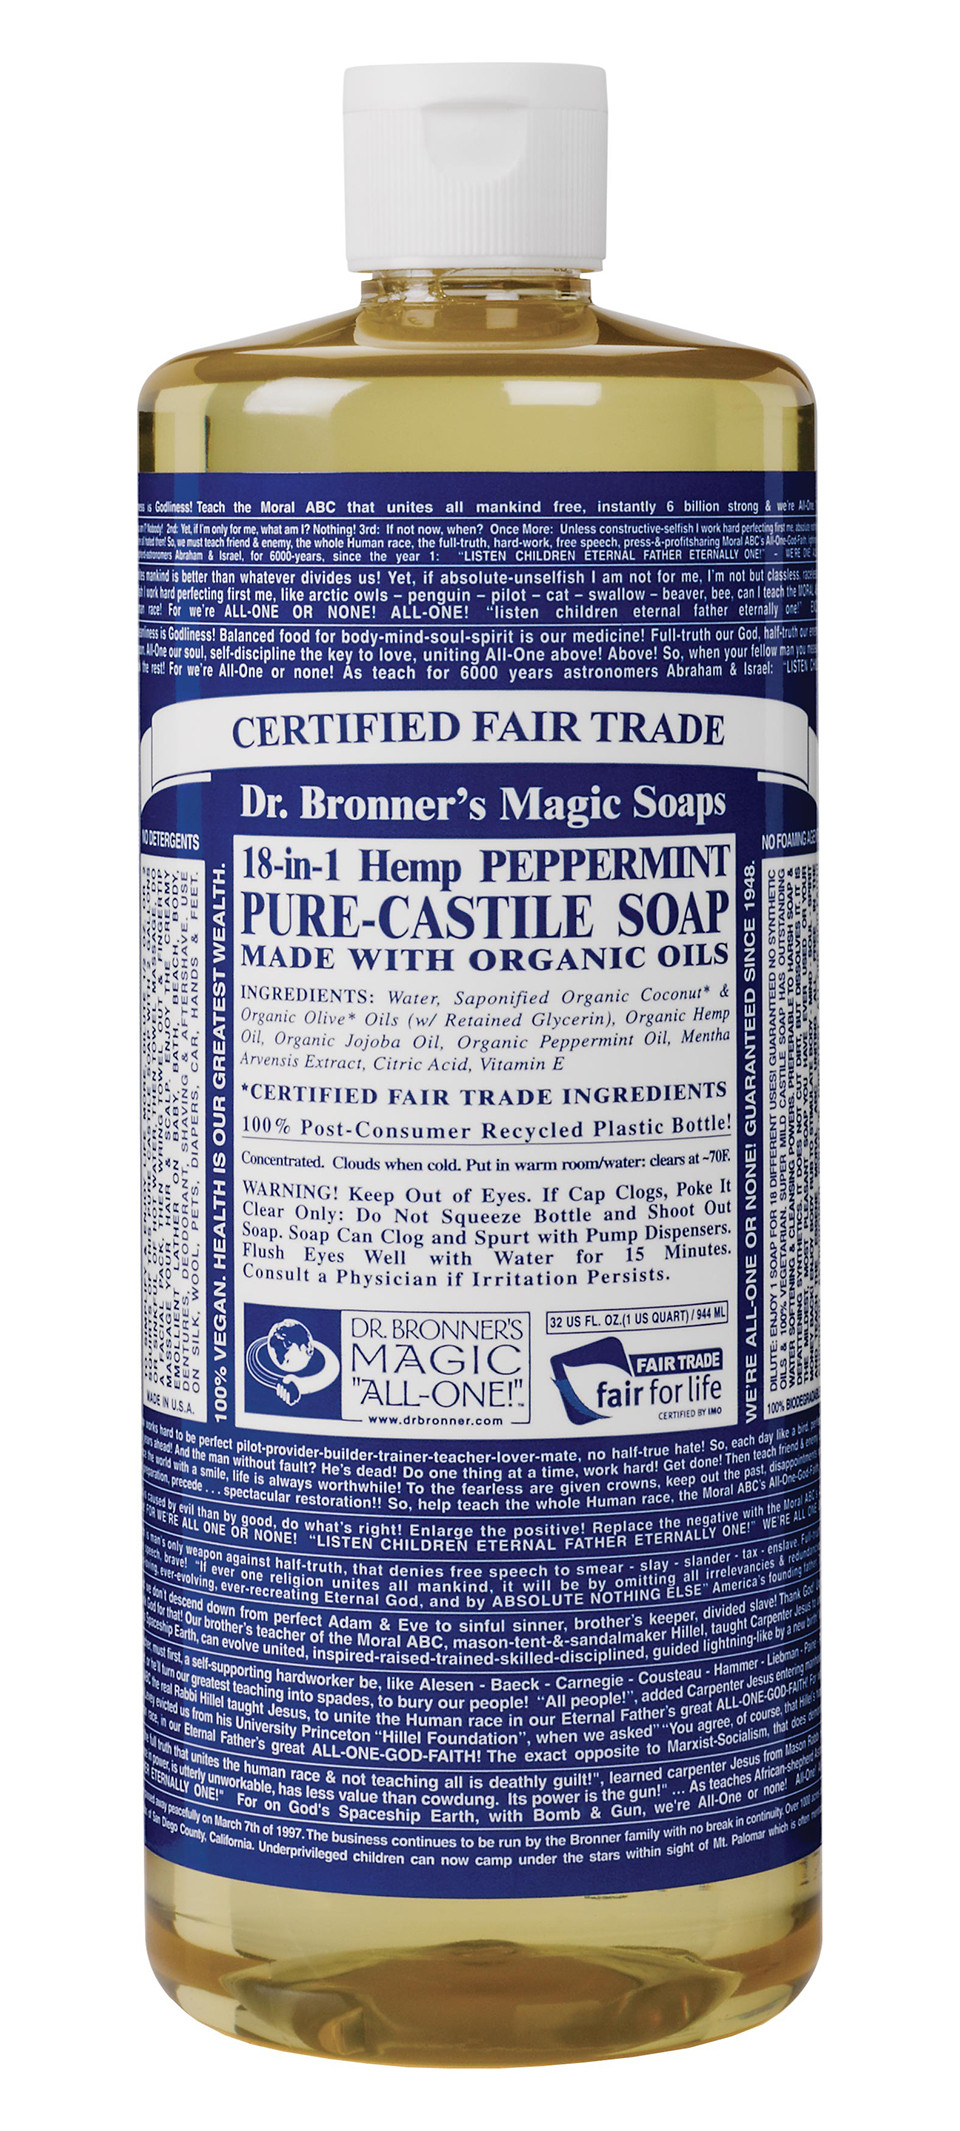 FDA Attacks Dr Bronner's, Prohibits Them From Sharing Information